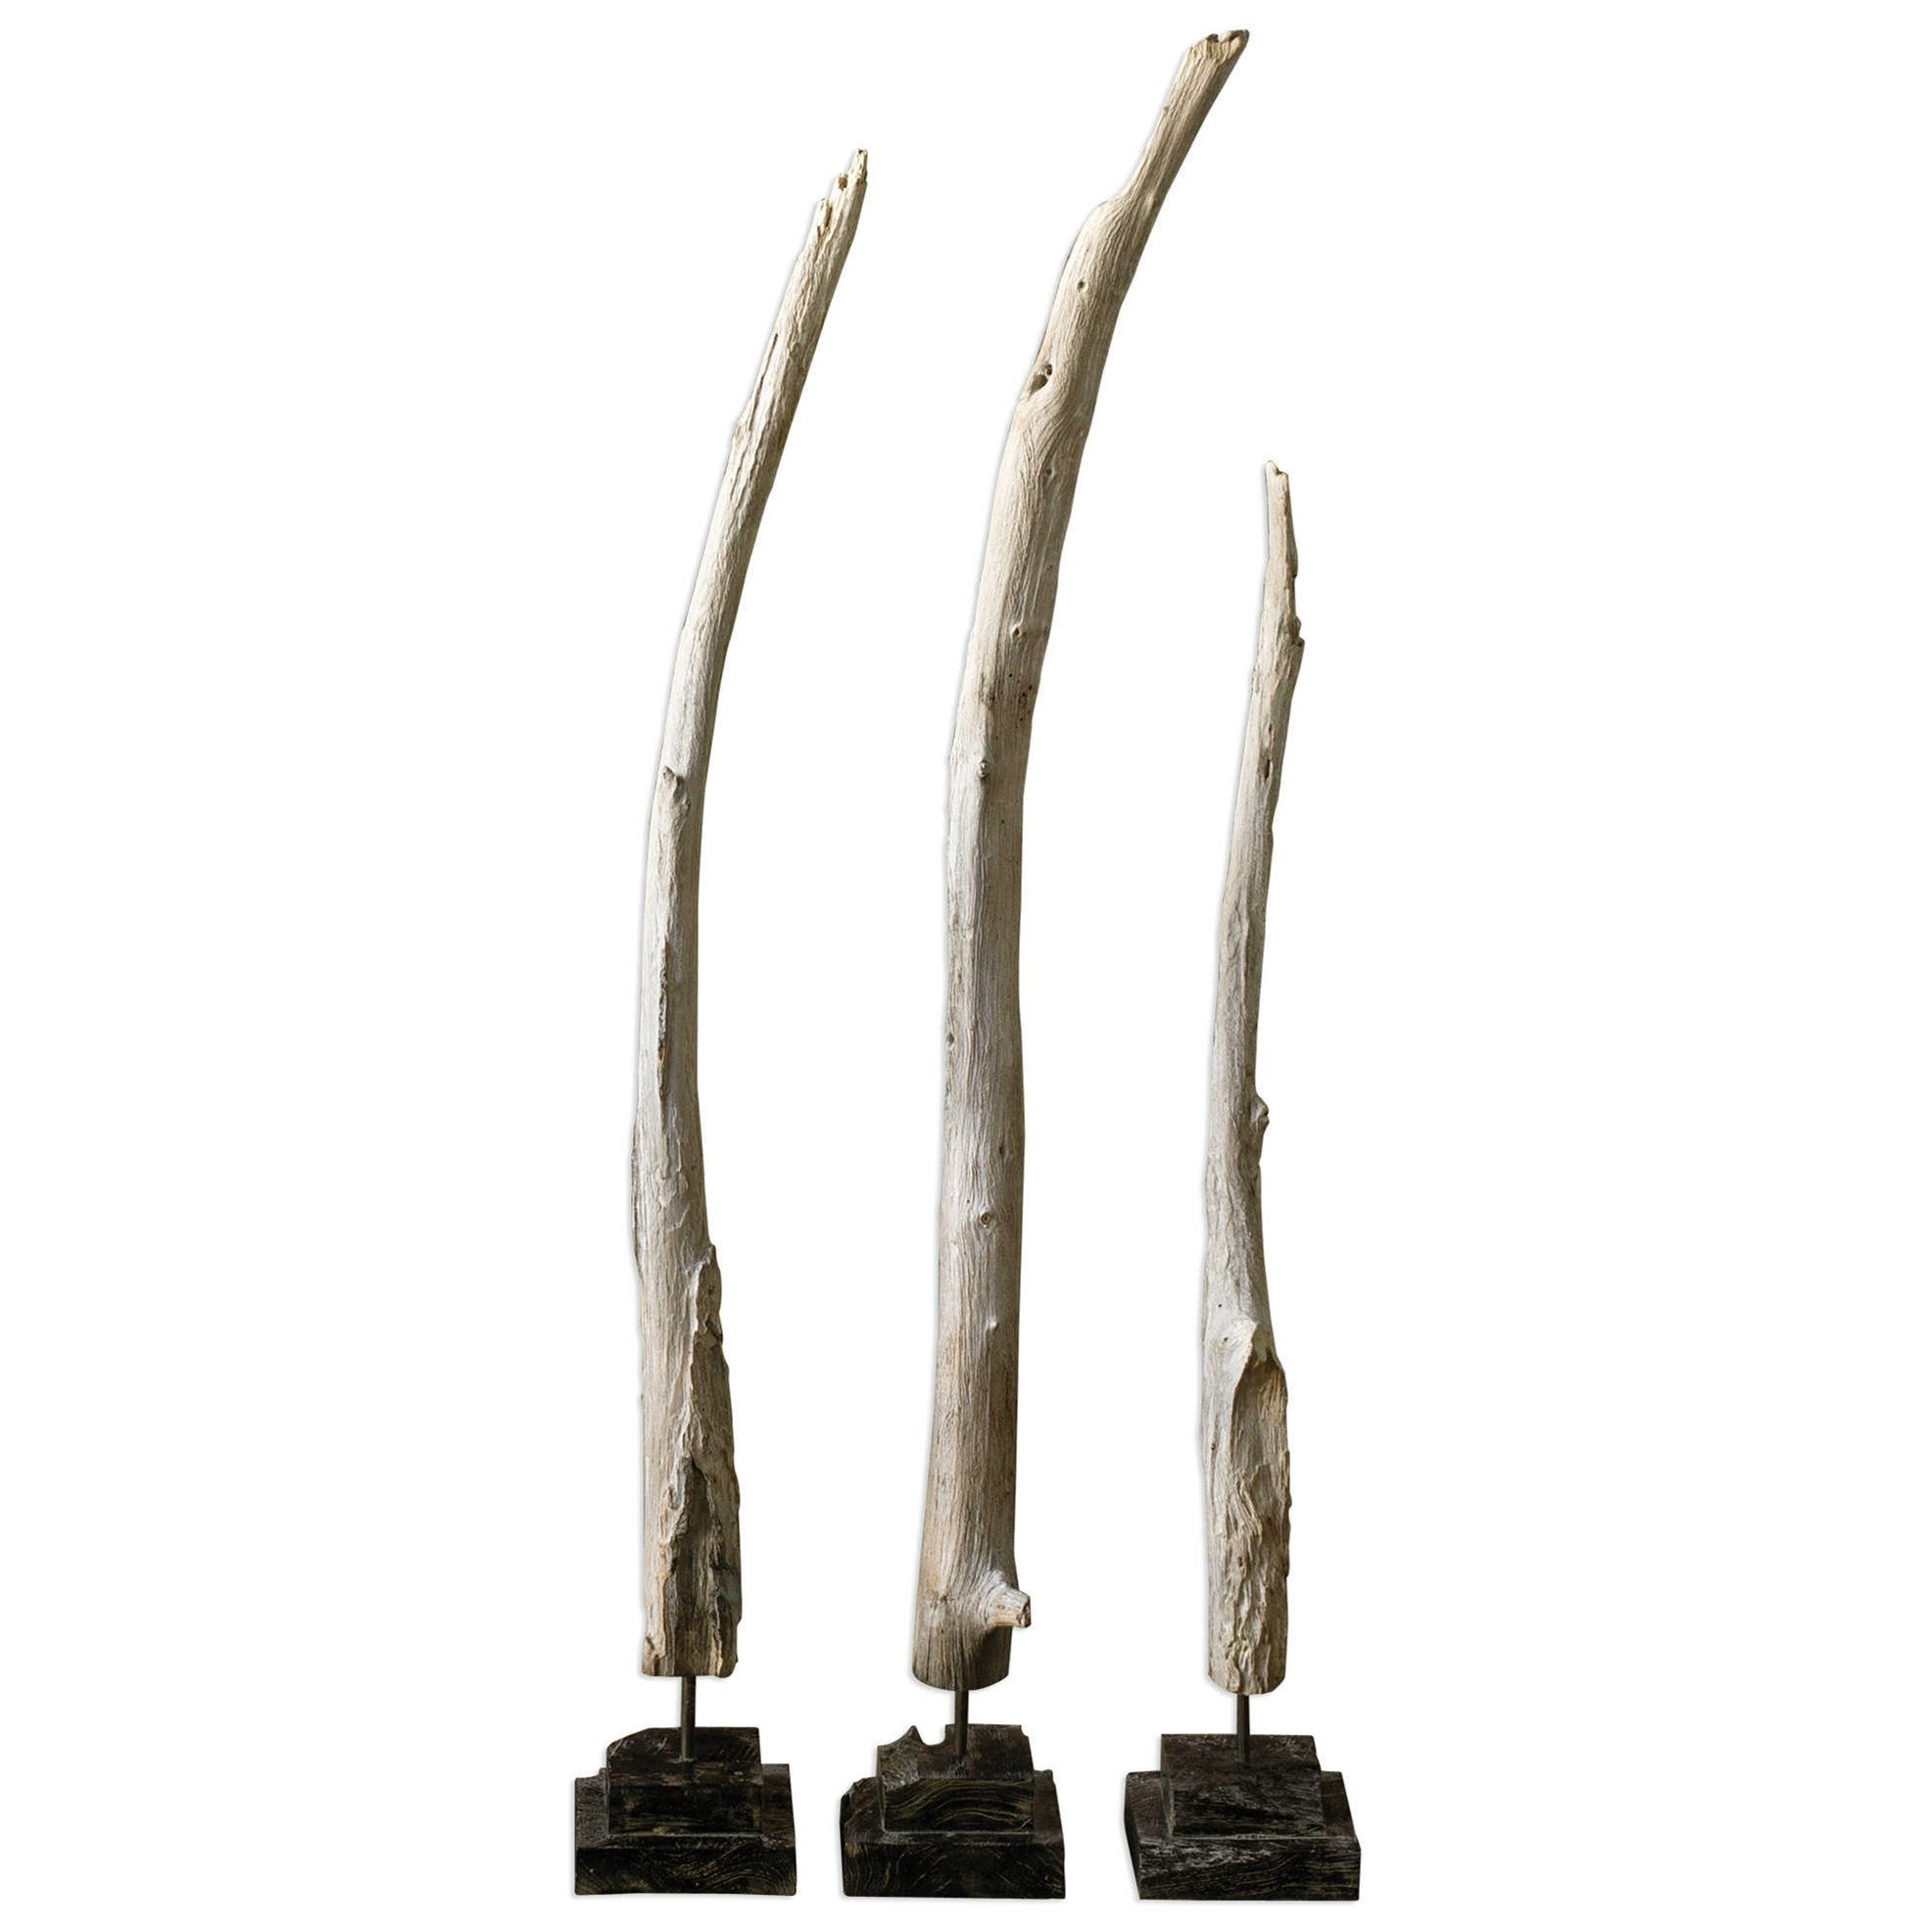 Accessories - Statues and Figurines Teak Branches Statues, Set of 3 by Uttermost at Mueller Furniture